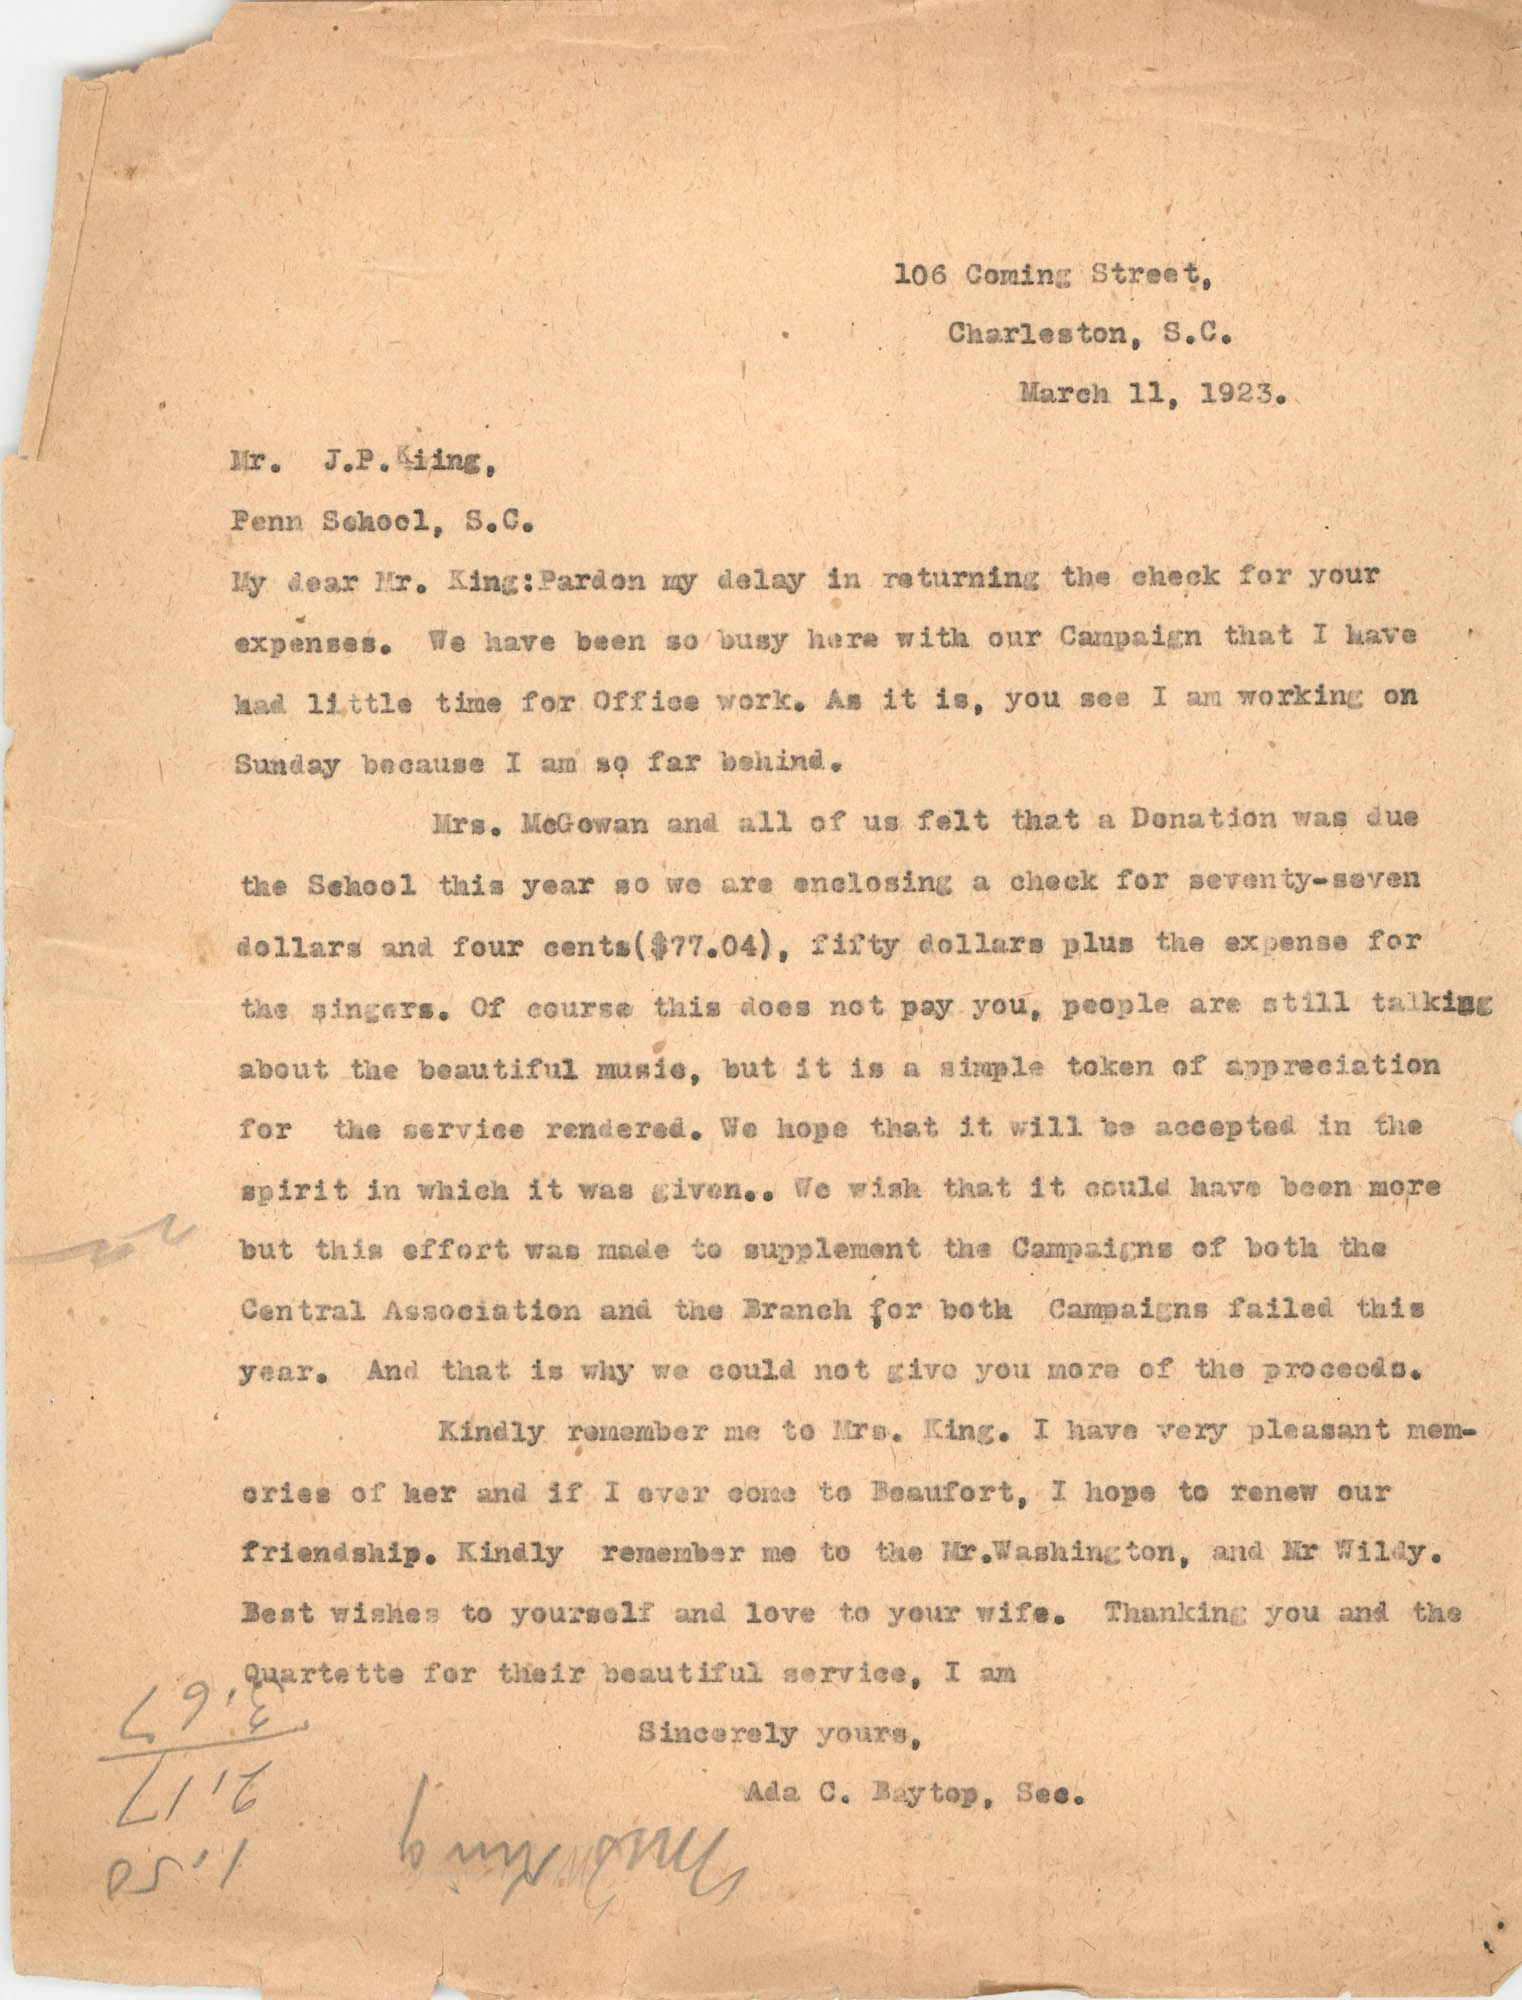 Letter from Ada C. Baytop to James P. King, March 11, 1923